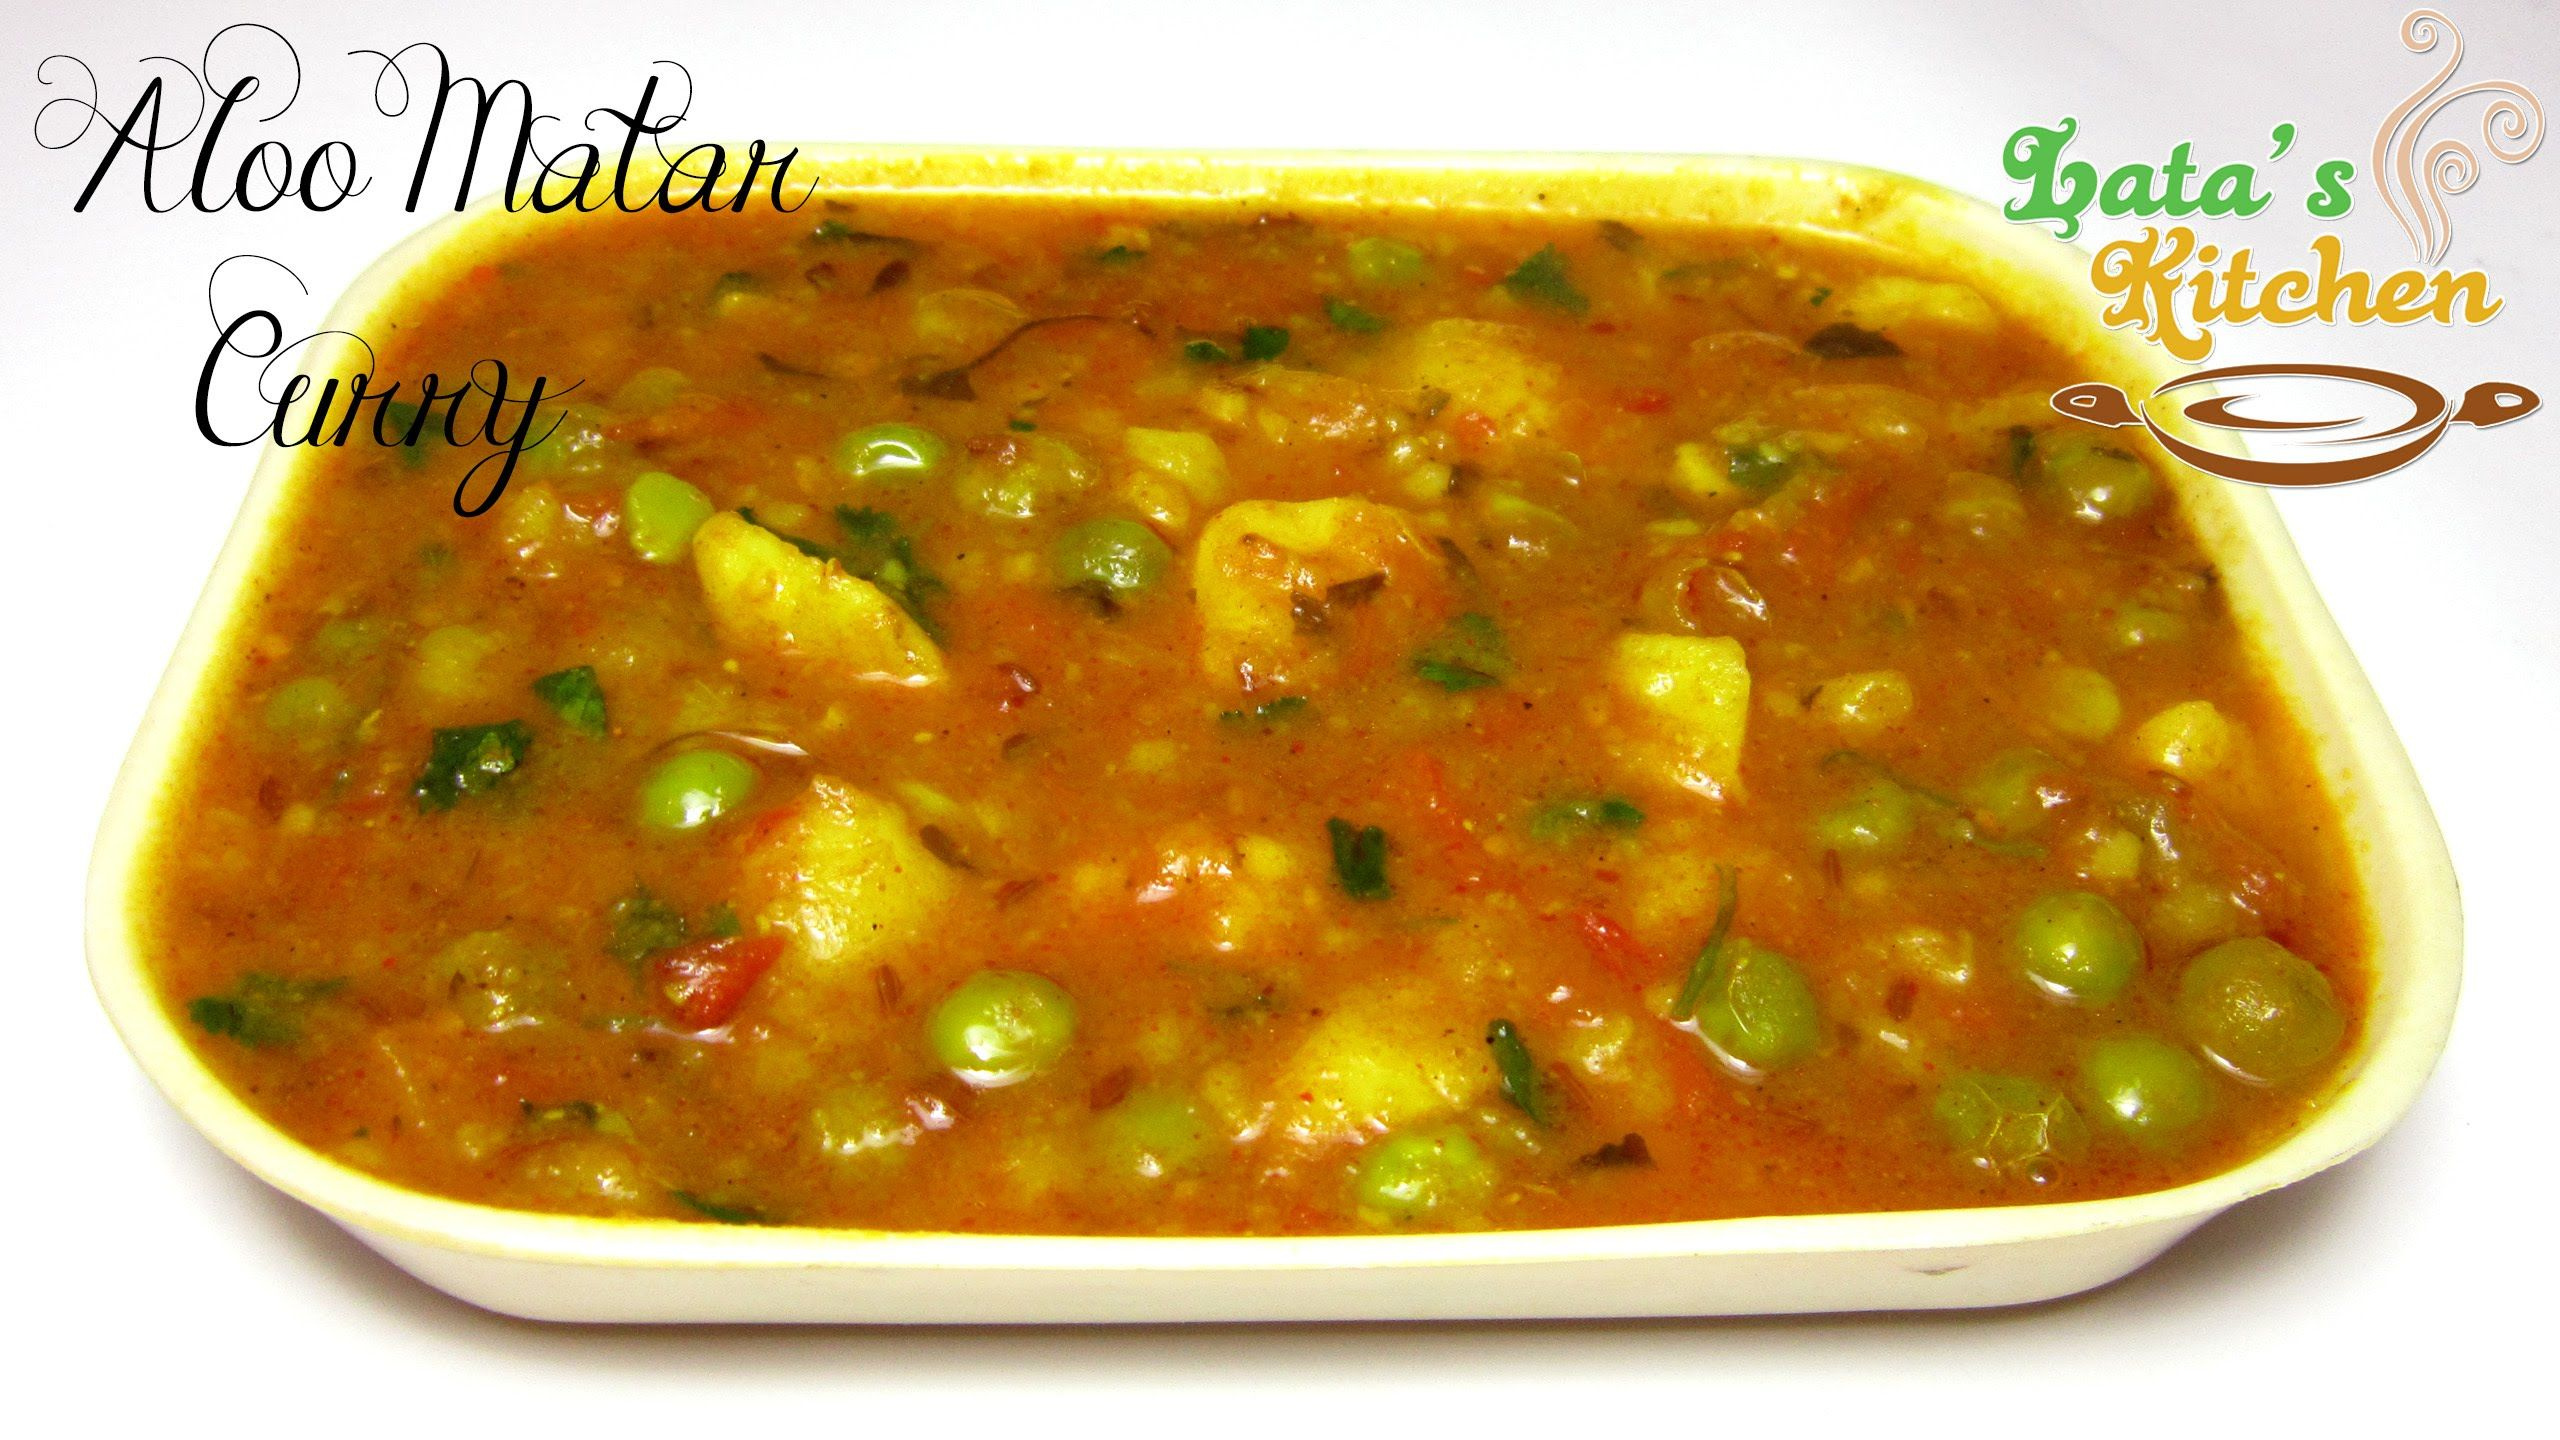 Aloo matar curry indian vegetarian recipe video in hindi with aloo matar curry indian vegetarian recipe video in hindi with english subtitles forumfinder Image collections